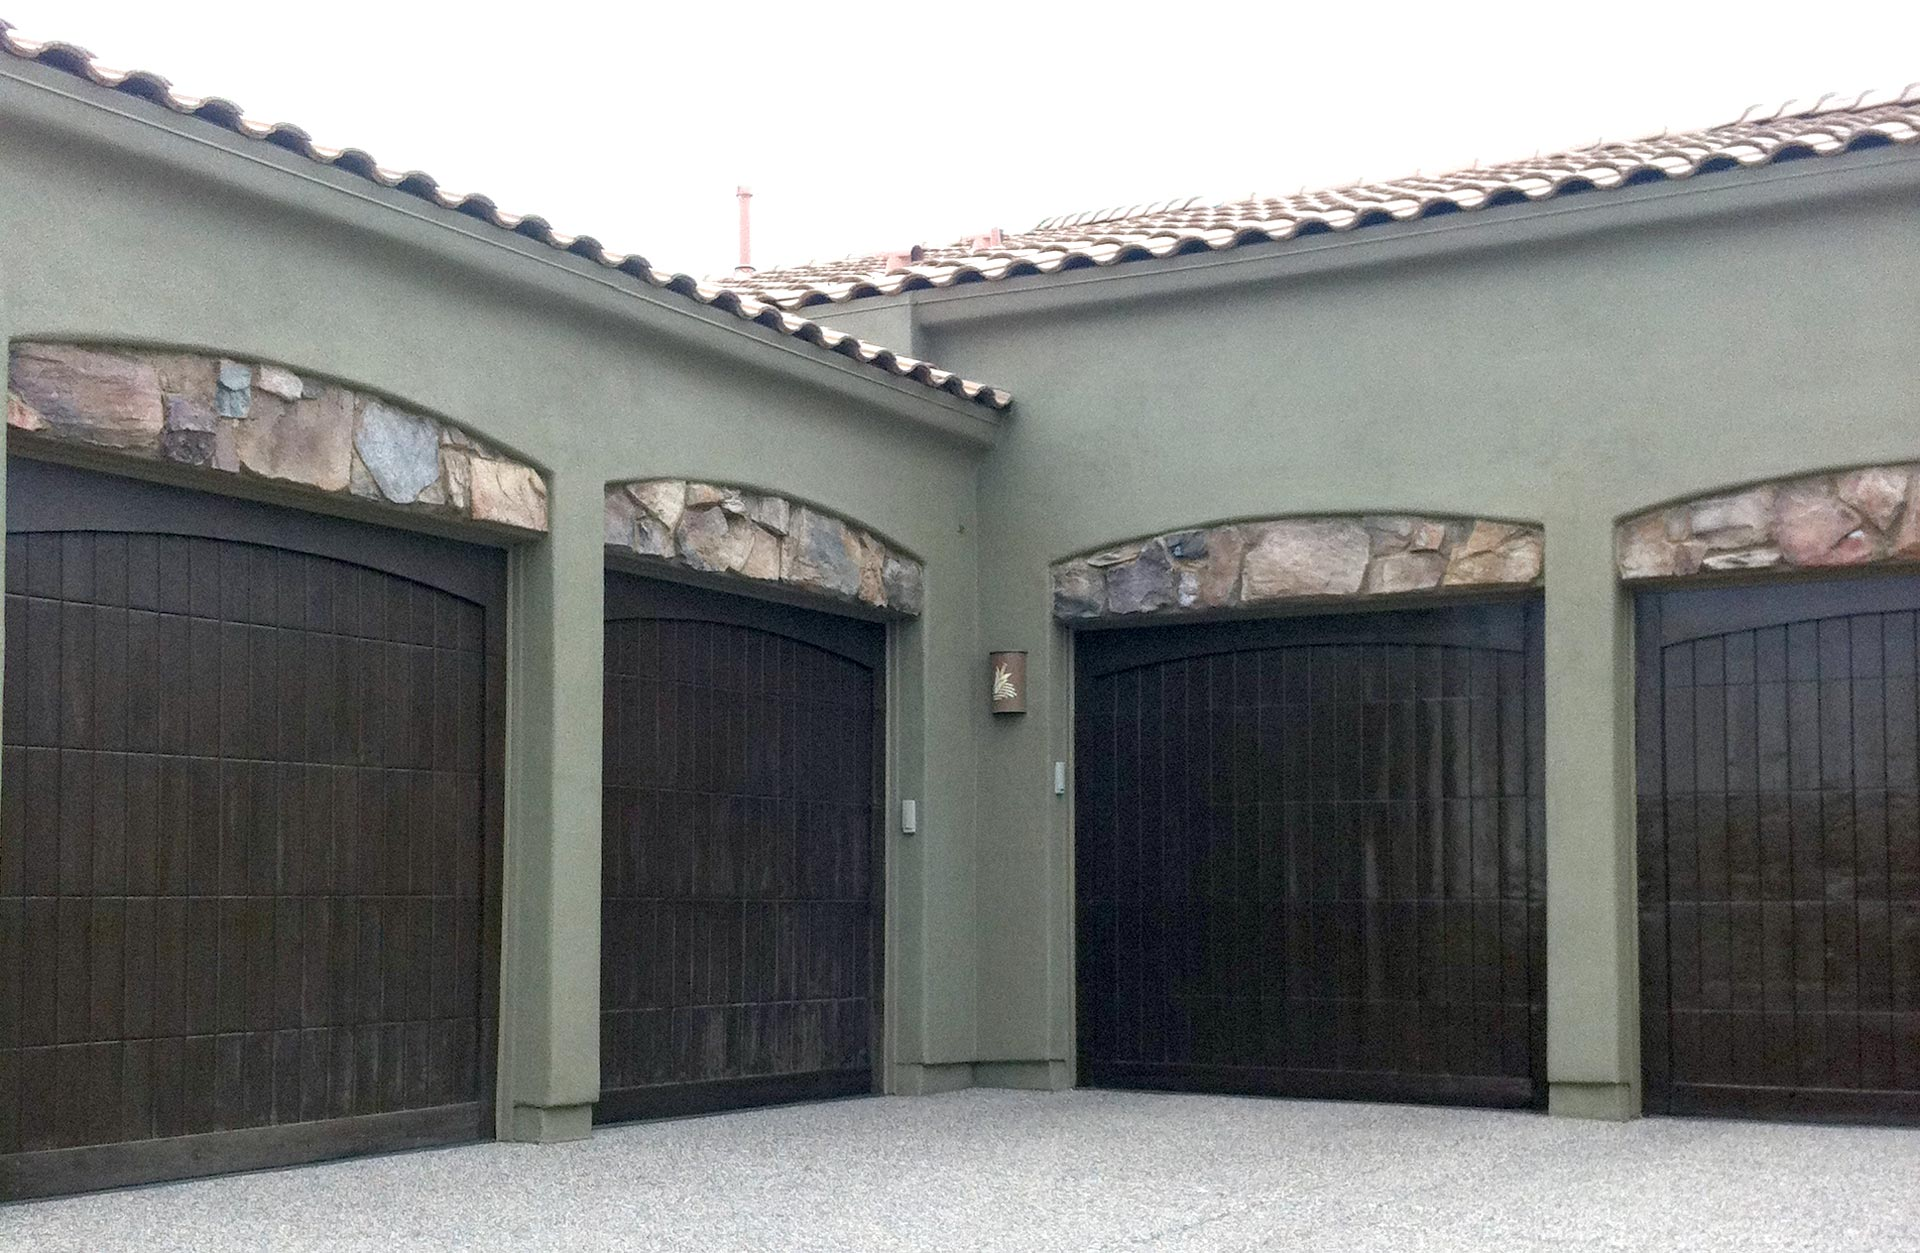 1253 #736058 Some Of Our Complete Projects wallpaper Complete Garage Doors 36251920